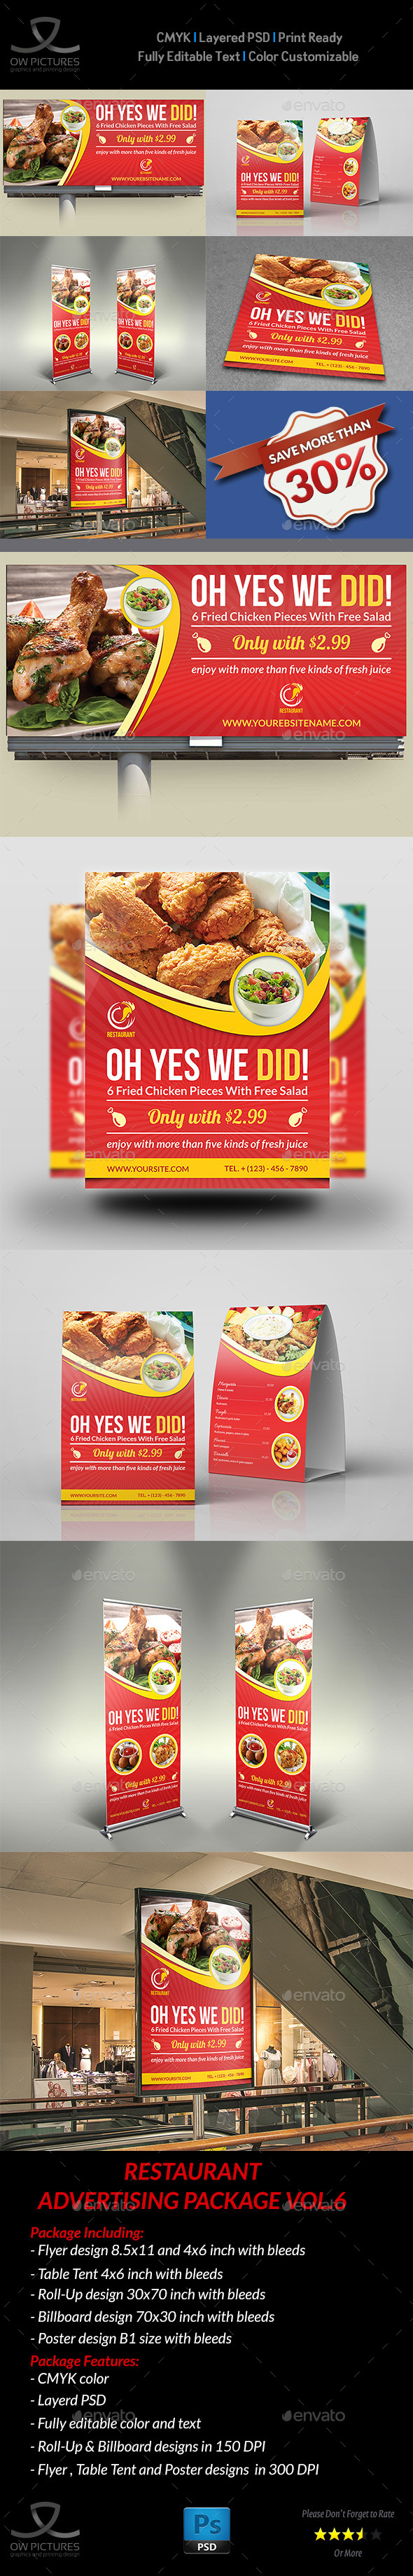 Restaurant Advertising Bundle Vol.6 - Signage Print Templates